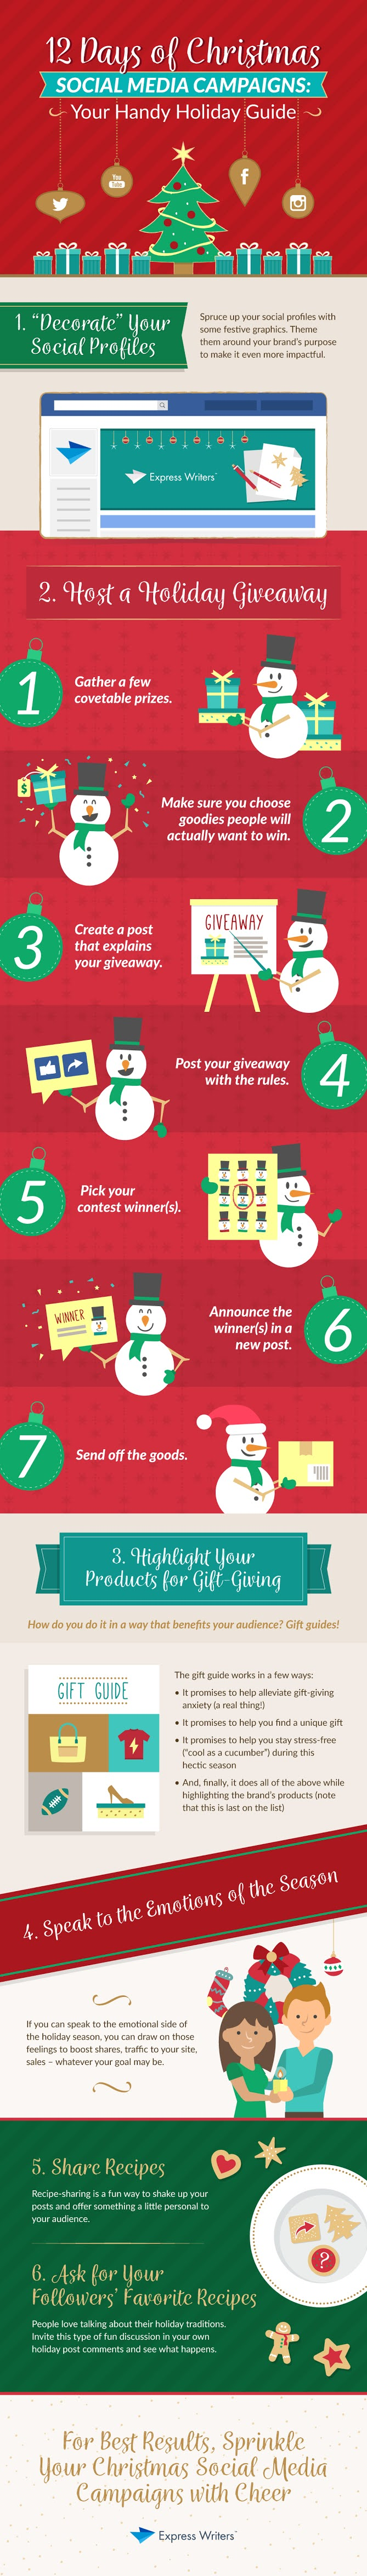 12 Days of Christmas Social Media Campaigns: Your Handy Holiday Guide #infographic #Christmas #Social Media #infographics #Holiday Guide #Christmas Social Media Campaigns